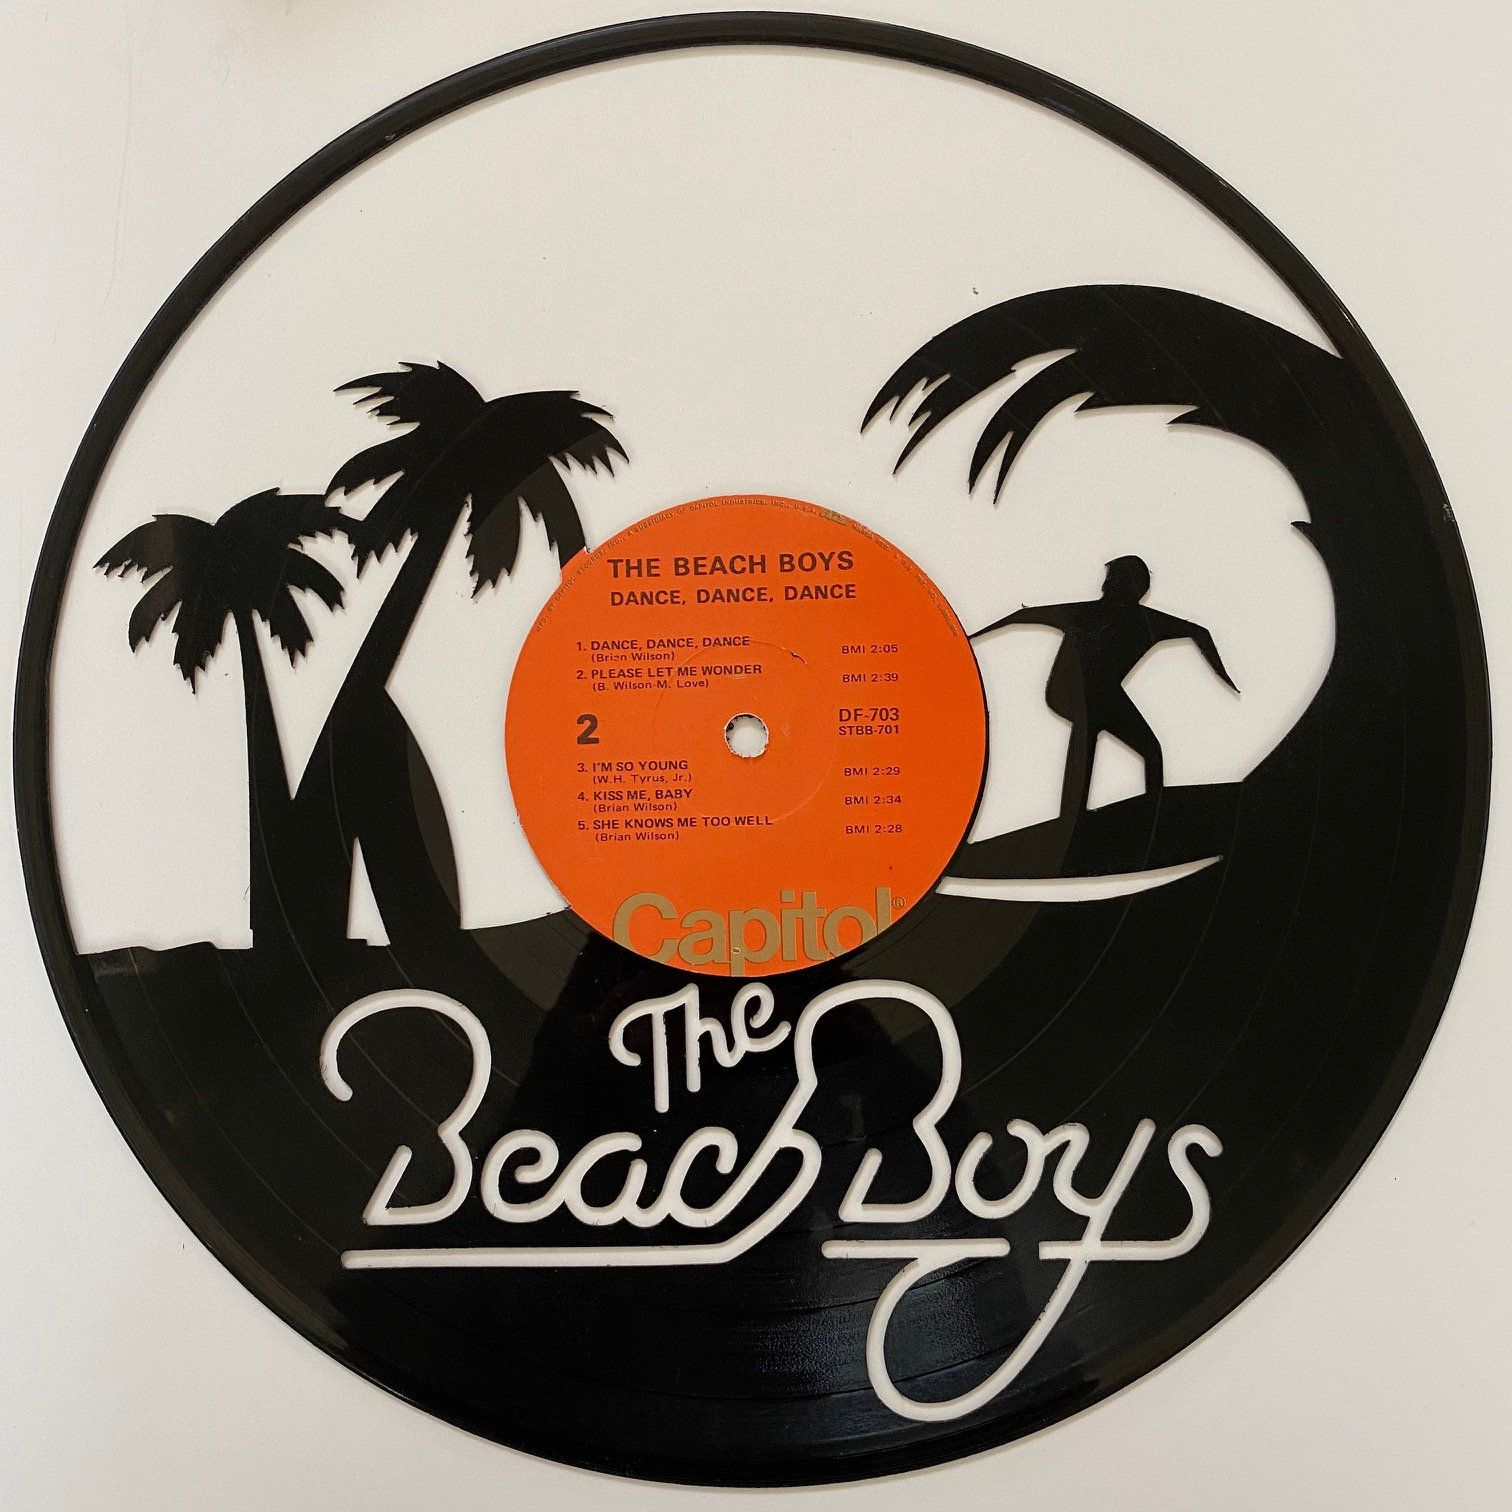 Excited To Share The Latest Addition To My Etsy Shop Beach Boys Vinyl Record Art Https Etsy Me 365w24a Office Vinyl Record Art Vinyl Album Art Record Art